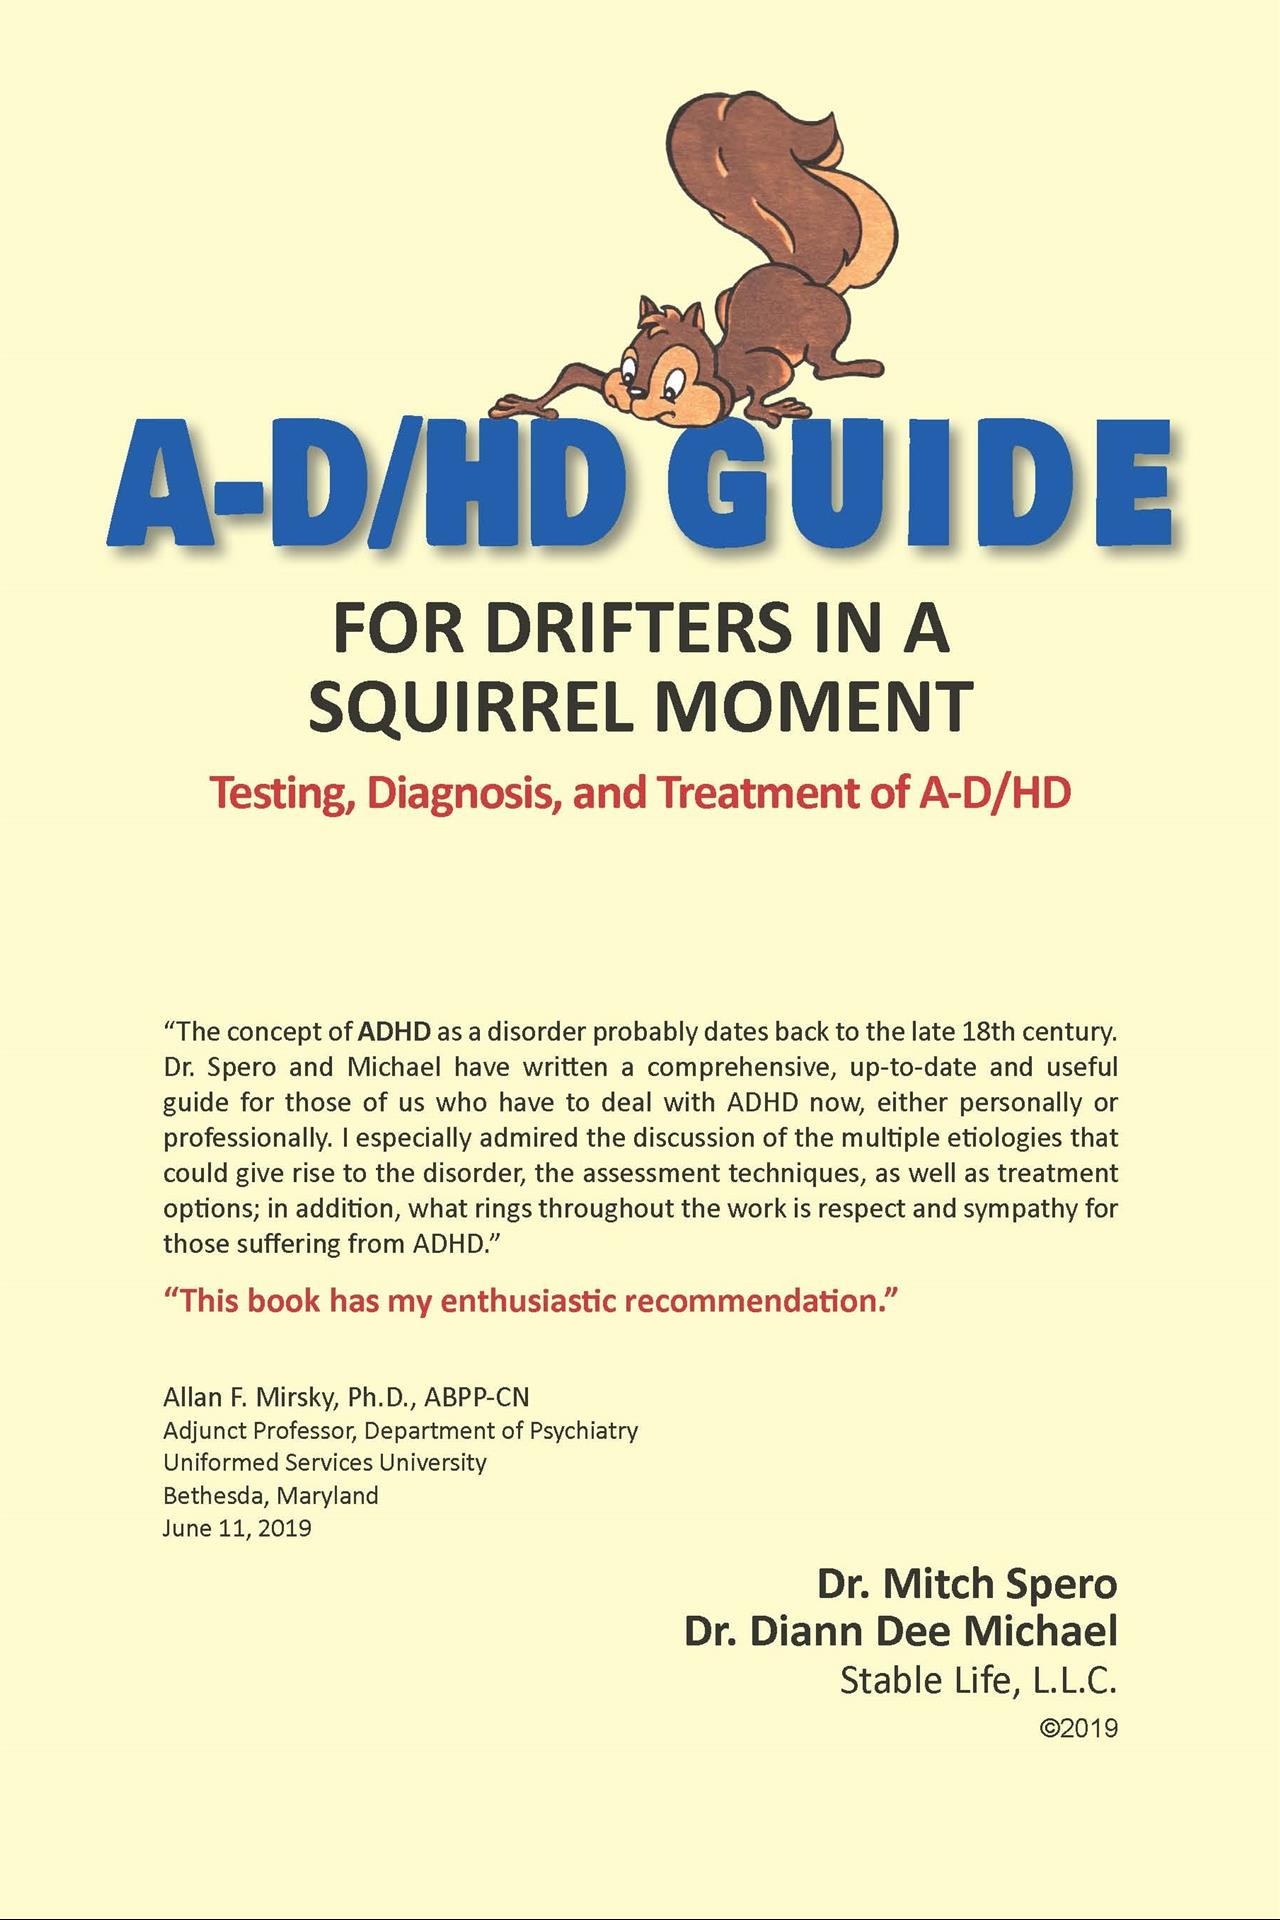 A-D/HD GUIDE FOR DRIFTERS IN A SQUIRREL MOMENT (The Book)